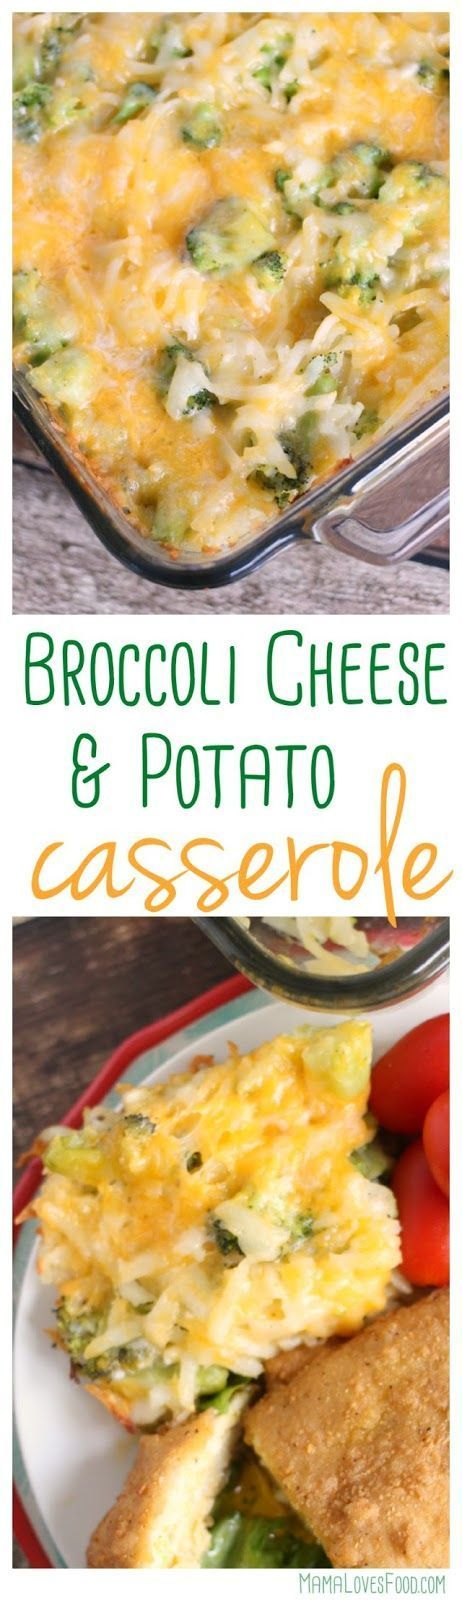 Broccoli Cheese Potato Casserole and Chicken Kiev- a hearty fall meal idea from @mommynamedapril